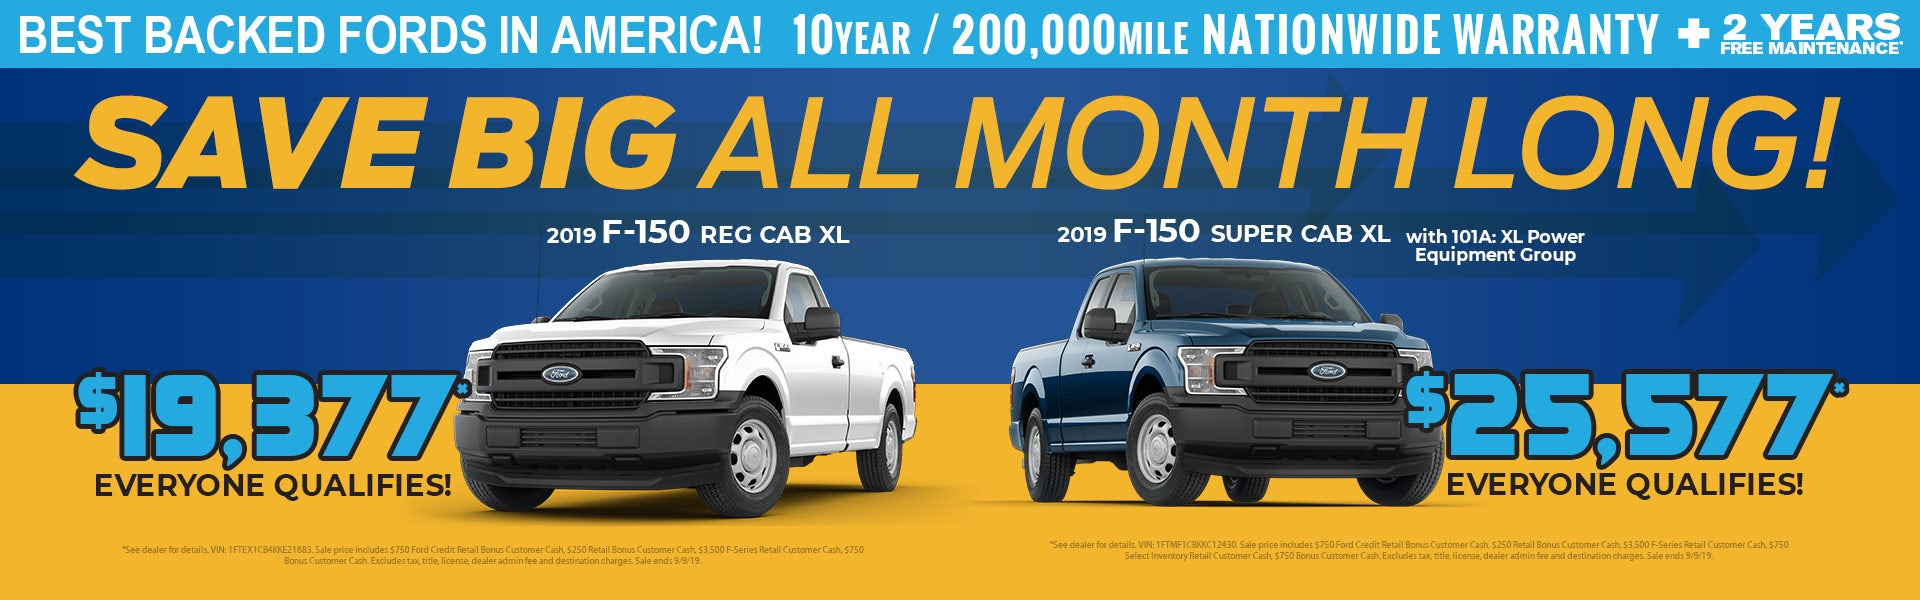 Ford Vehicle Inventory - Hazelwood Ford dealer in Hazelwood